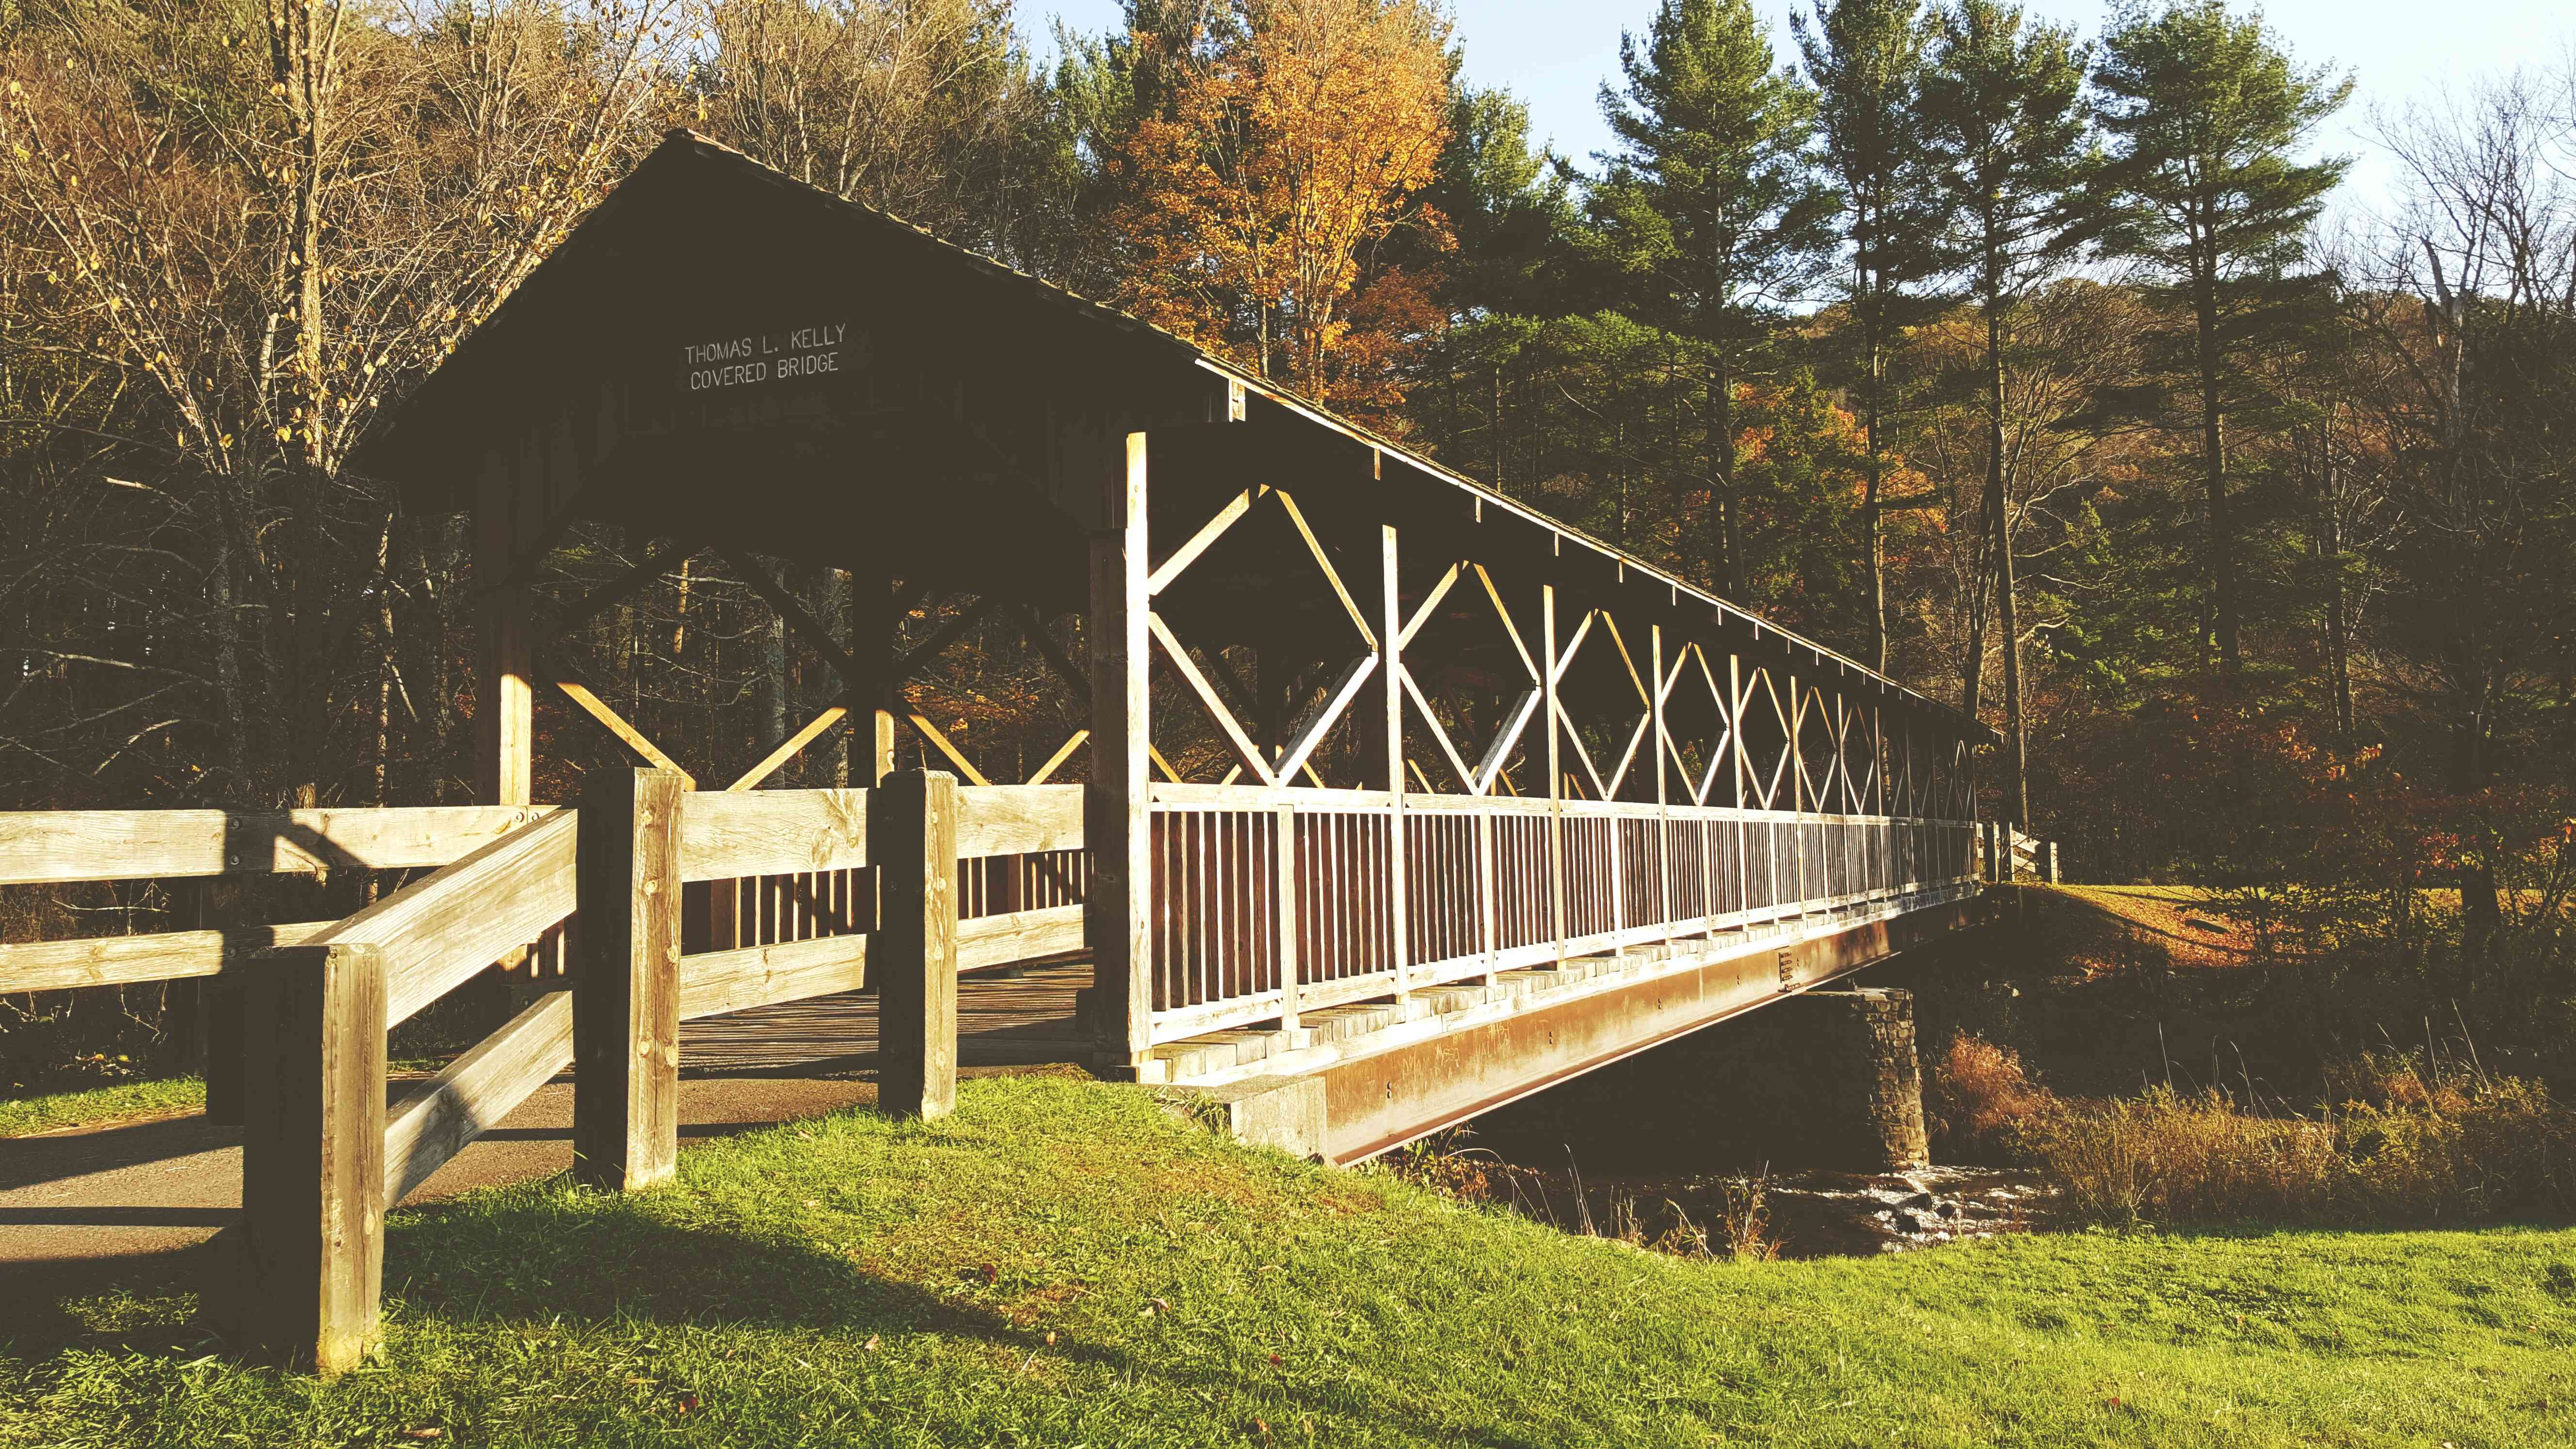 wooden bridge with roof over a river surrounded by autumnal trees